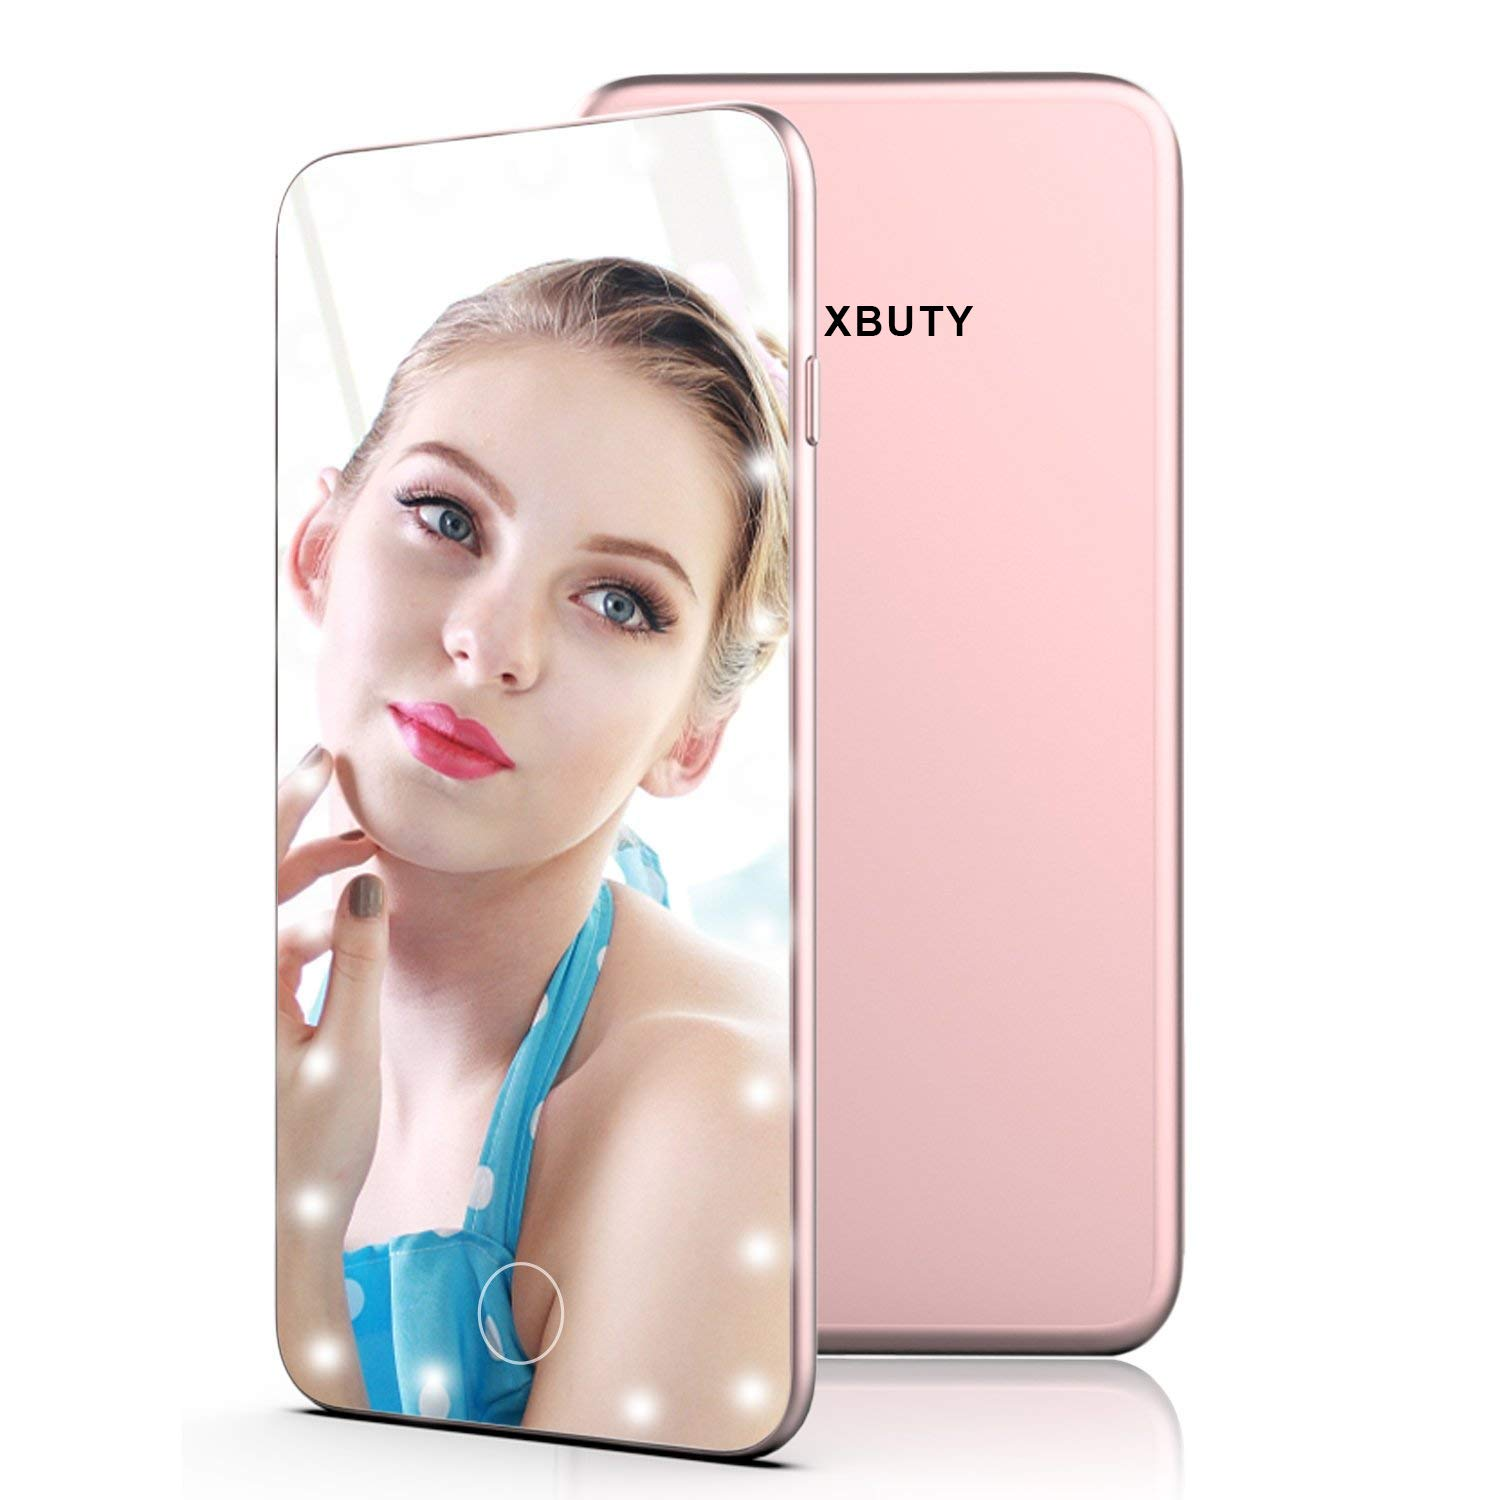 XBUTY Makeup Mirror with Lights Hollywood Style Lighted Vanity Mirror 5.5 Inch Small Hand Mirror Portable Cosmetic Mirror Dimmable Travel Handheld LED Mirror with USB Charging (Rose gold) by XBUTY (Image #7)